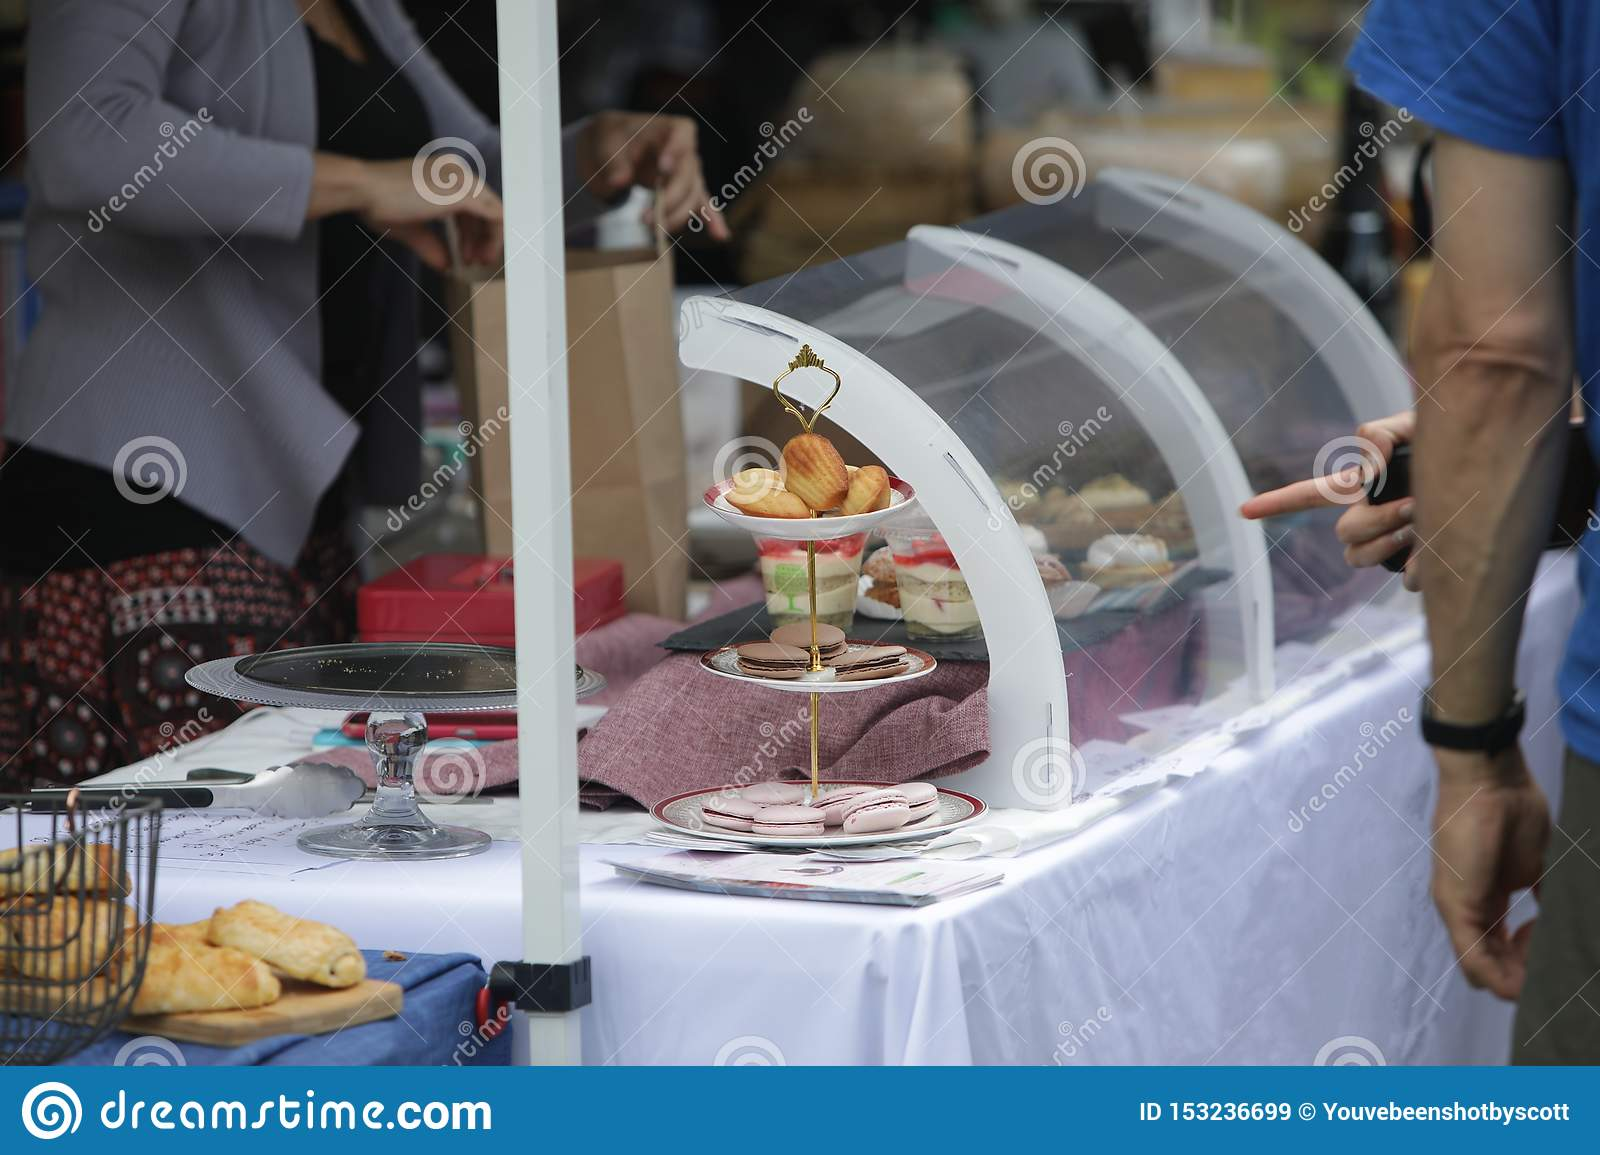 French Patisserie Market Selling Macaroons And Other Sweets Stock Image Image Of Pastisery Display 153236699